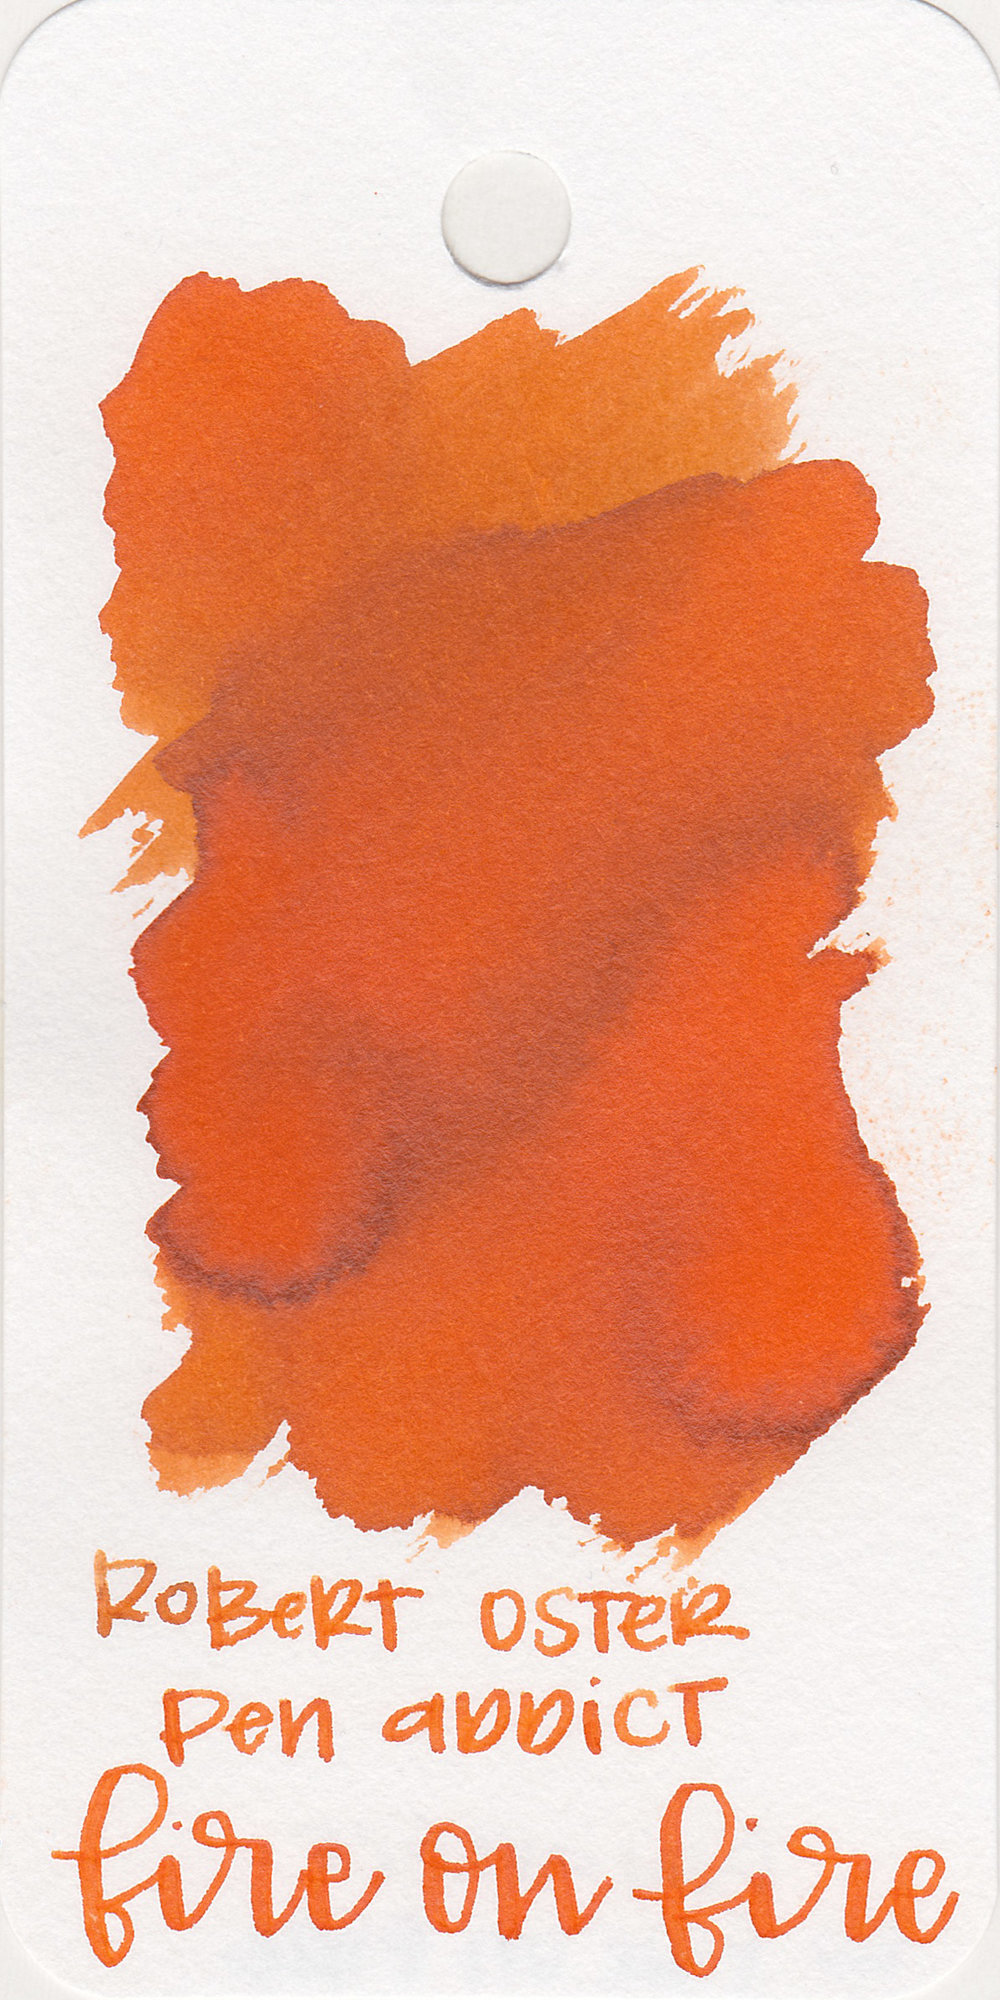 The color: - Fire on Fire is a bright, vibrant orange.